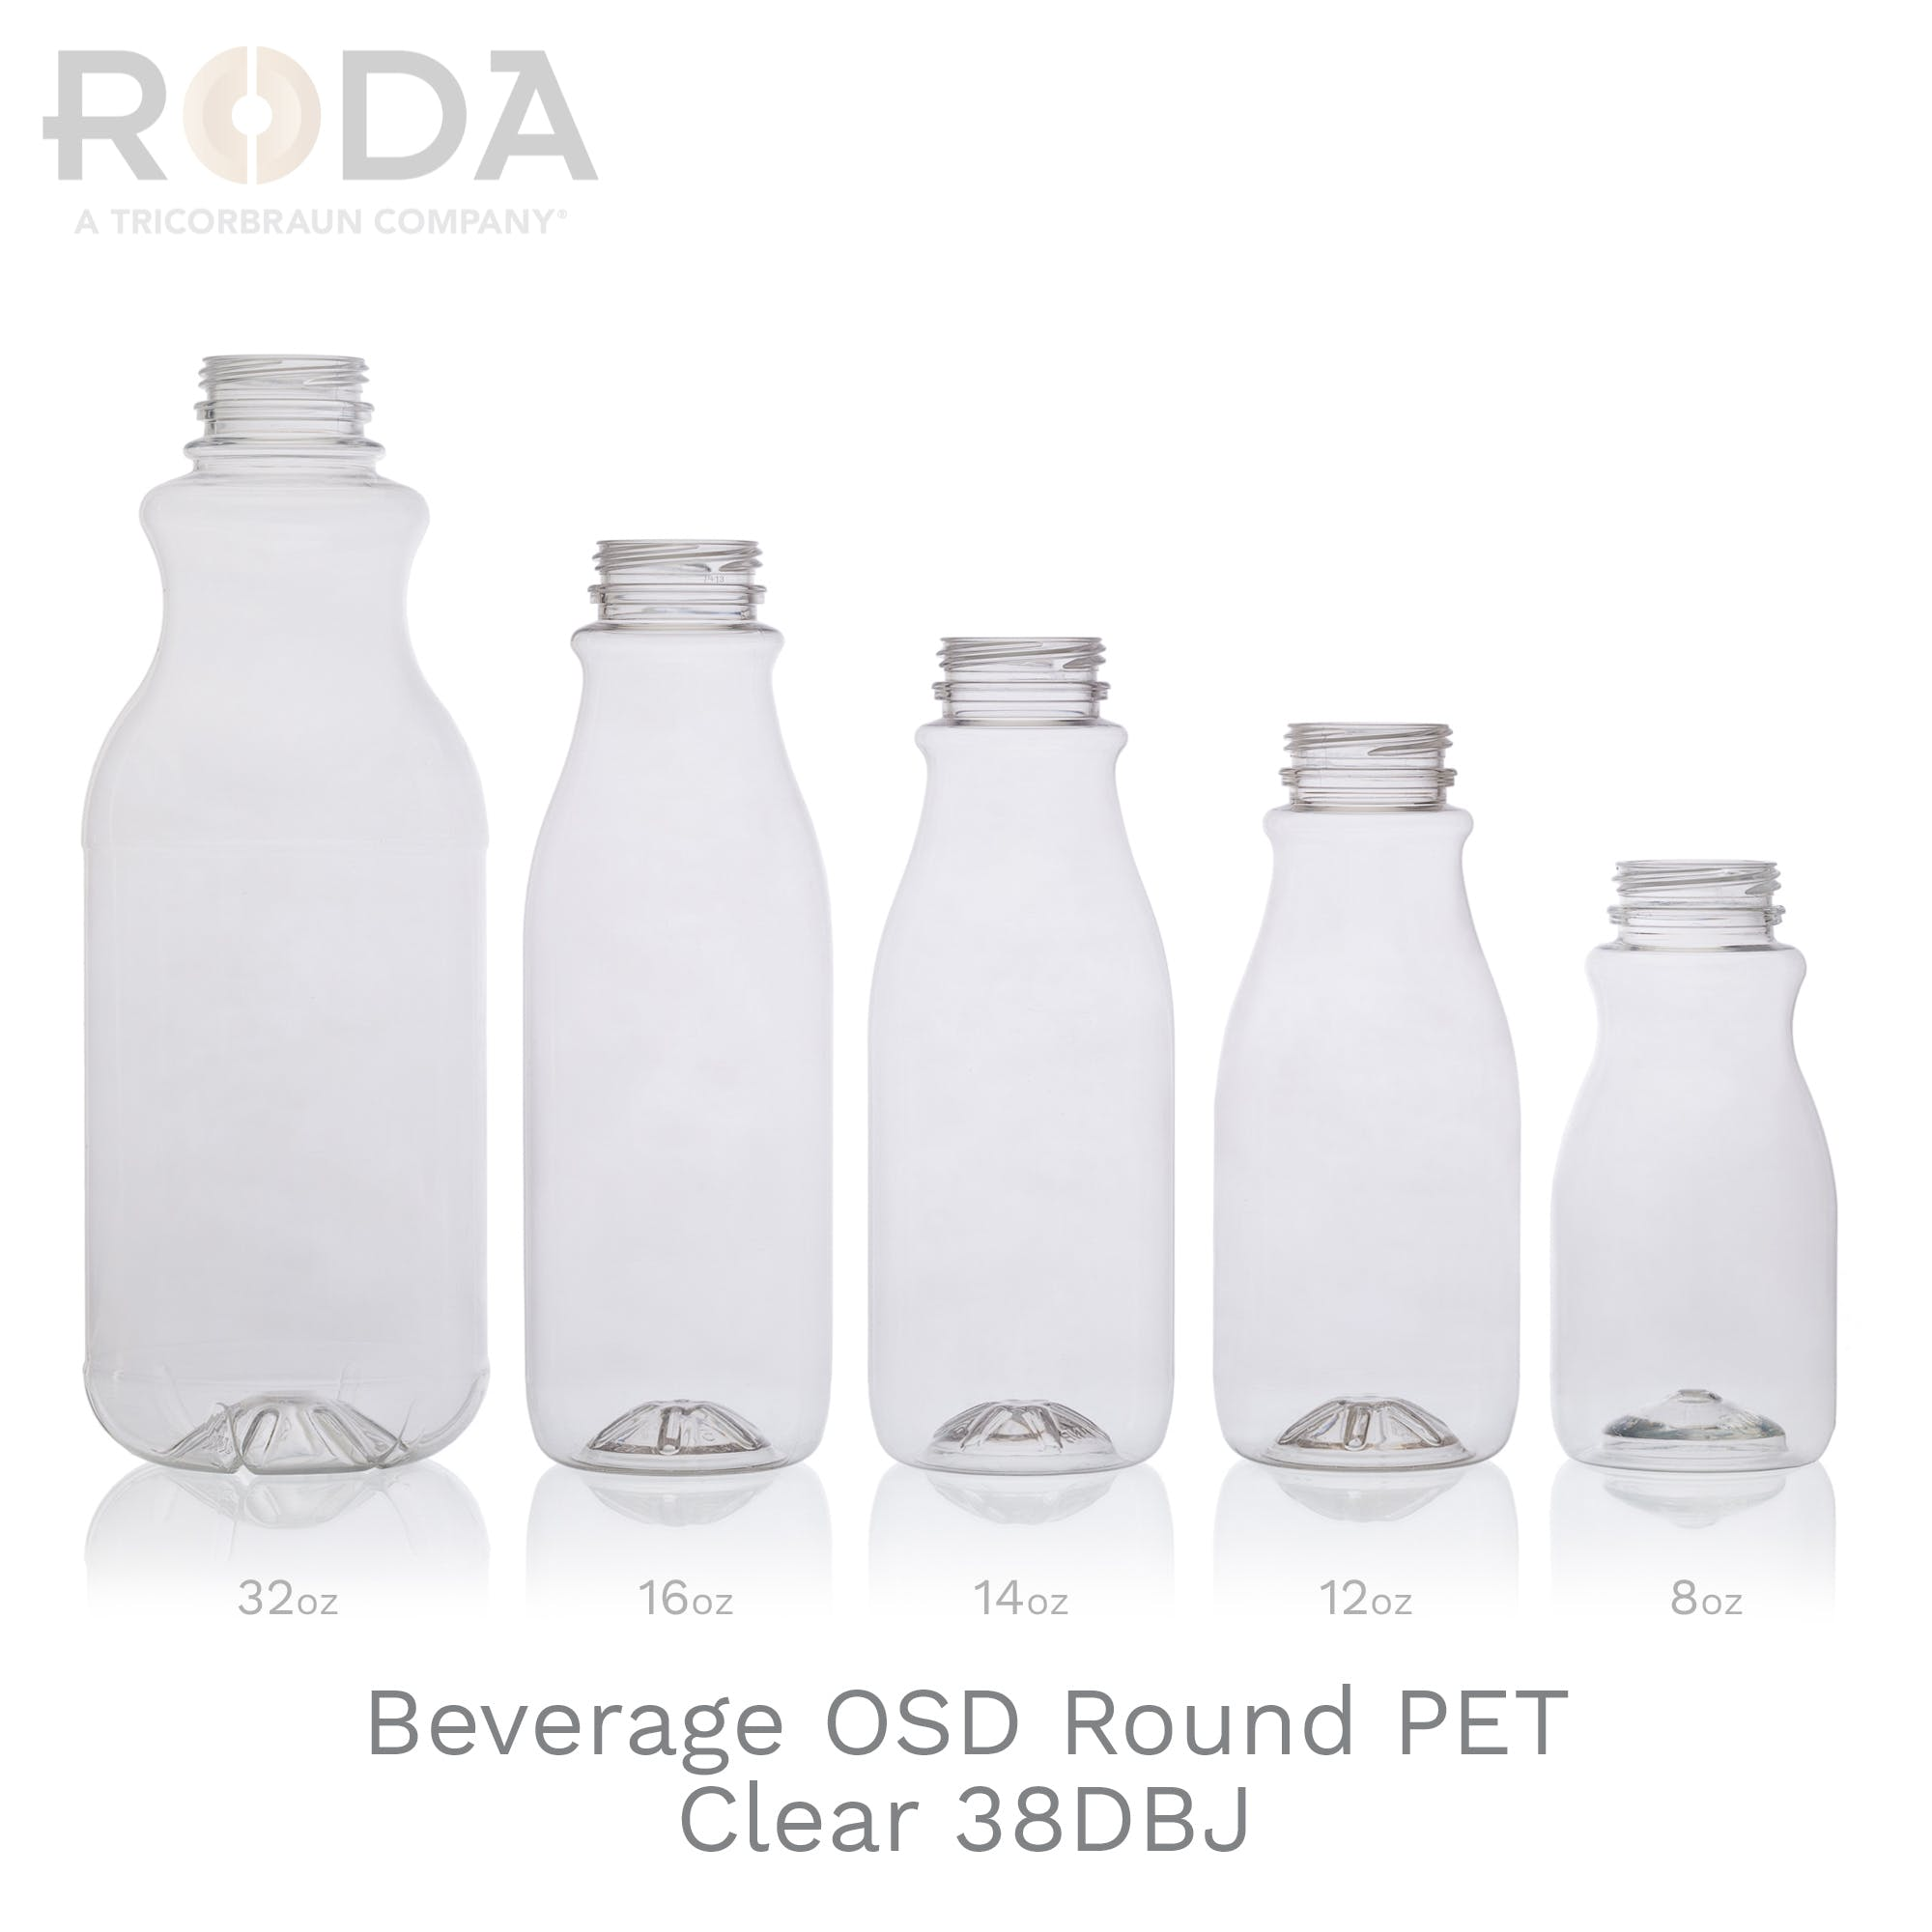 Beverage OSD Round PET Clear 38DBJ